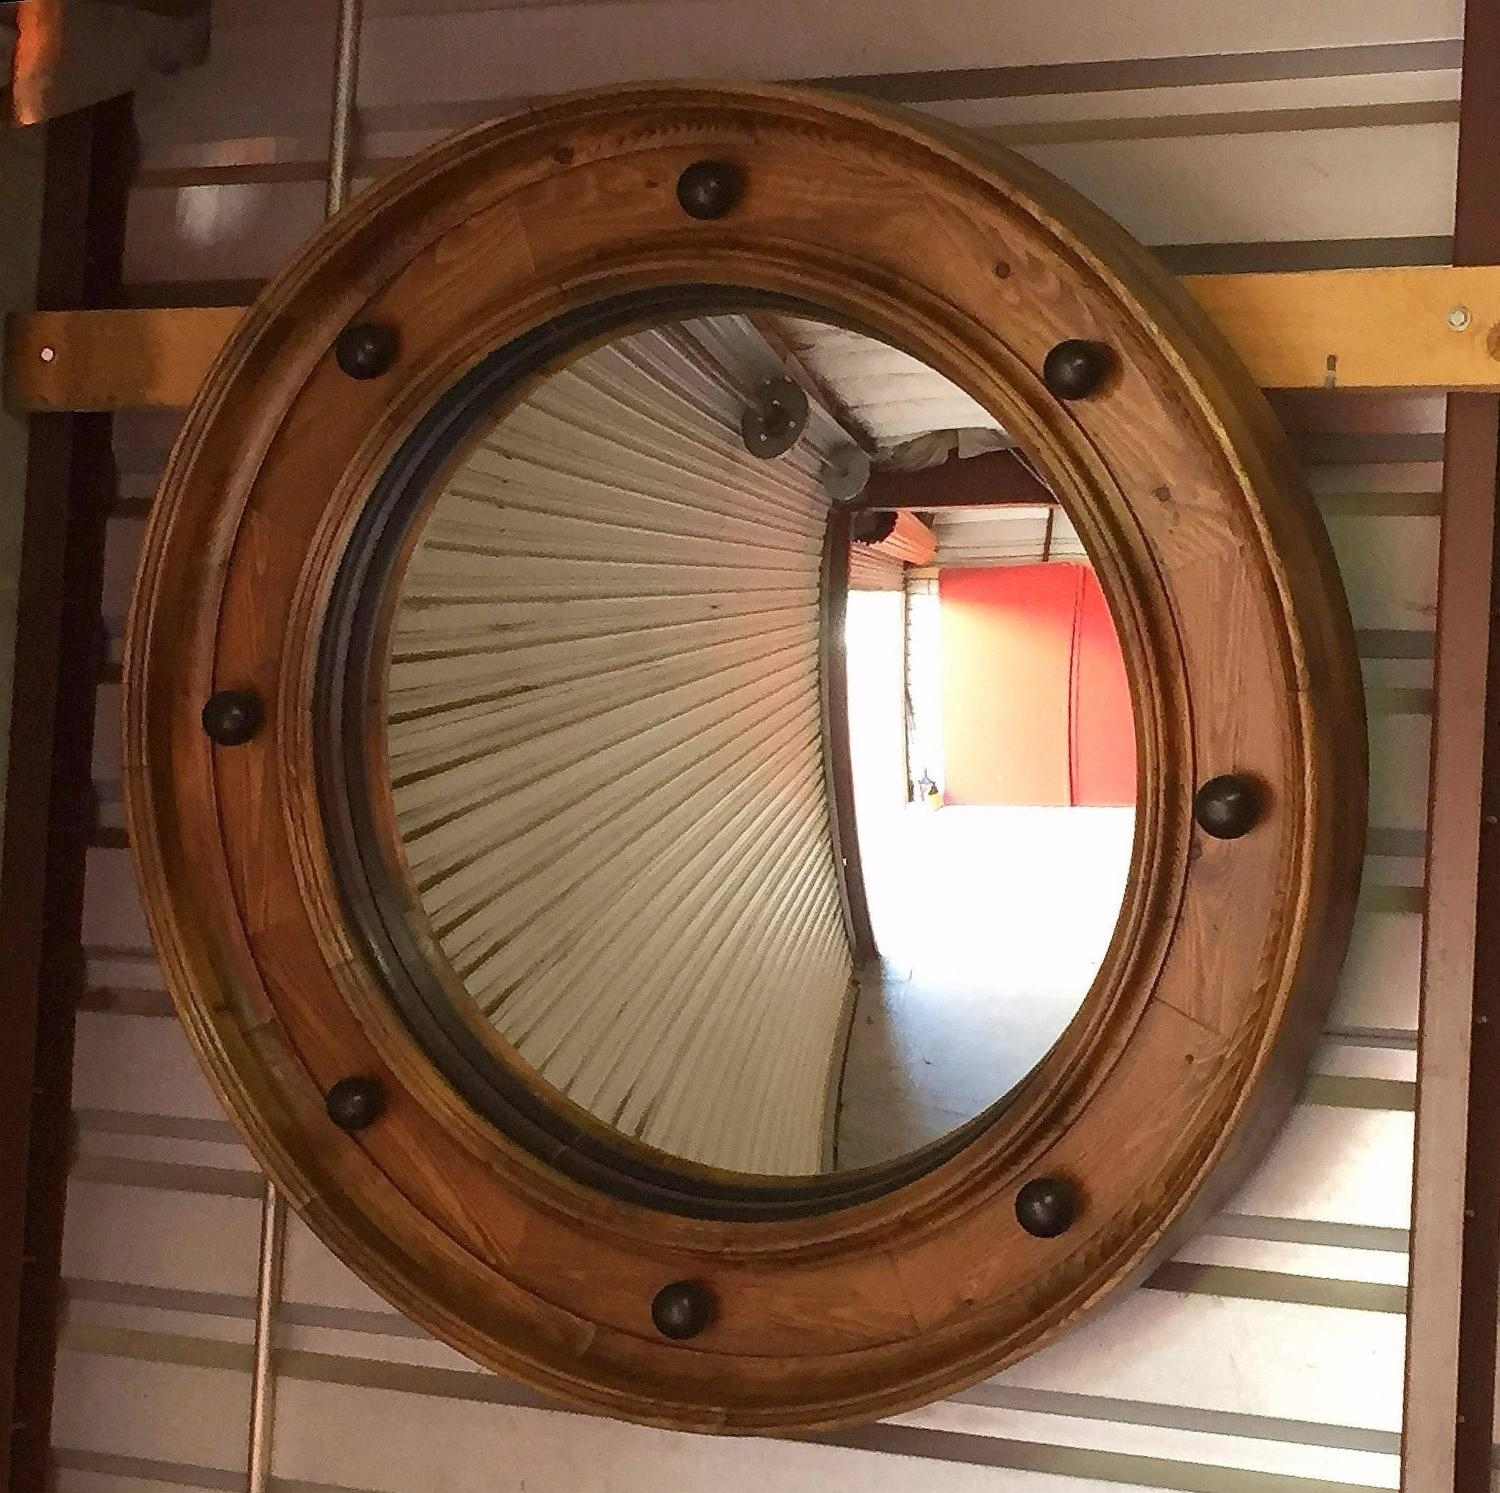 Large English Convex Mirror 42 Diameter From A Unique Throughout Curved Mirrors For Sale (Image 5 of 15)